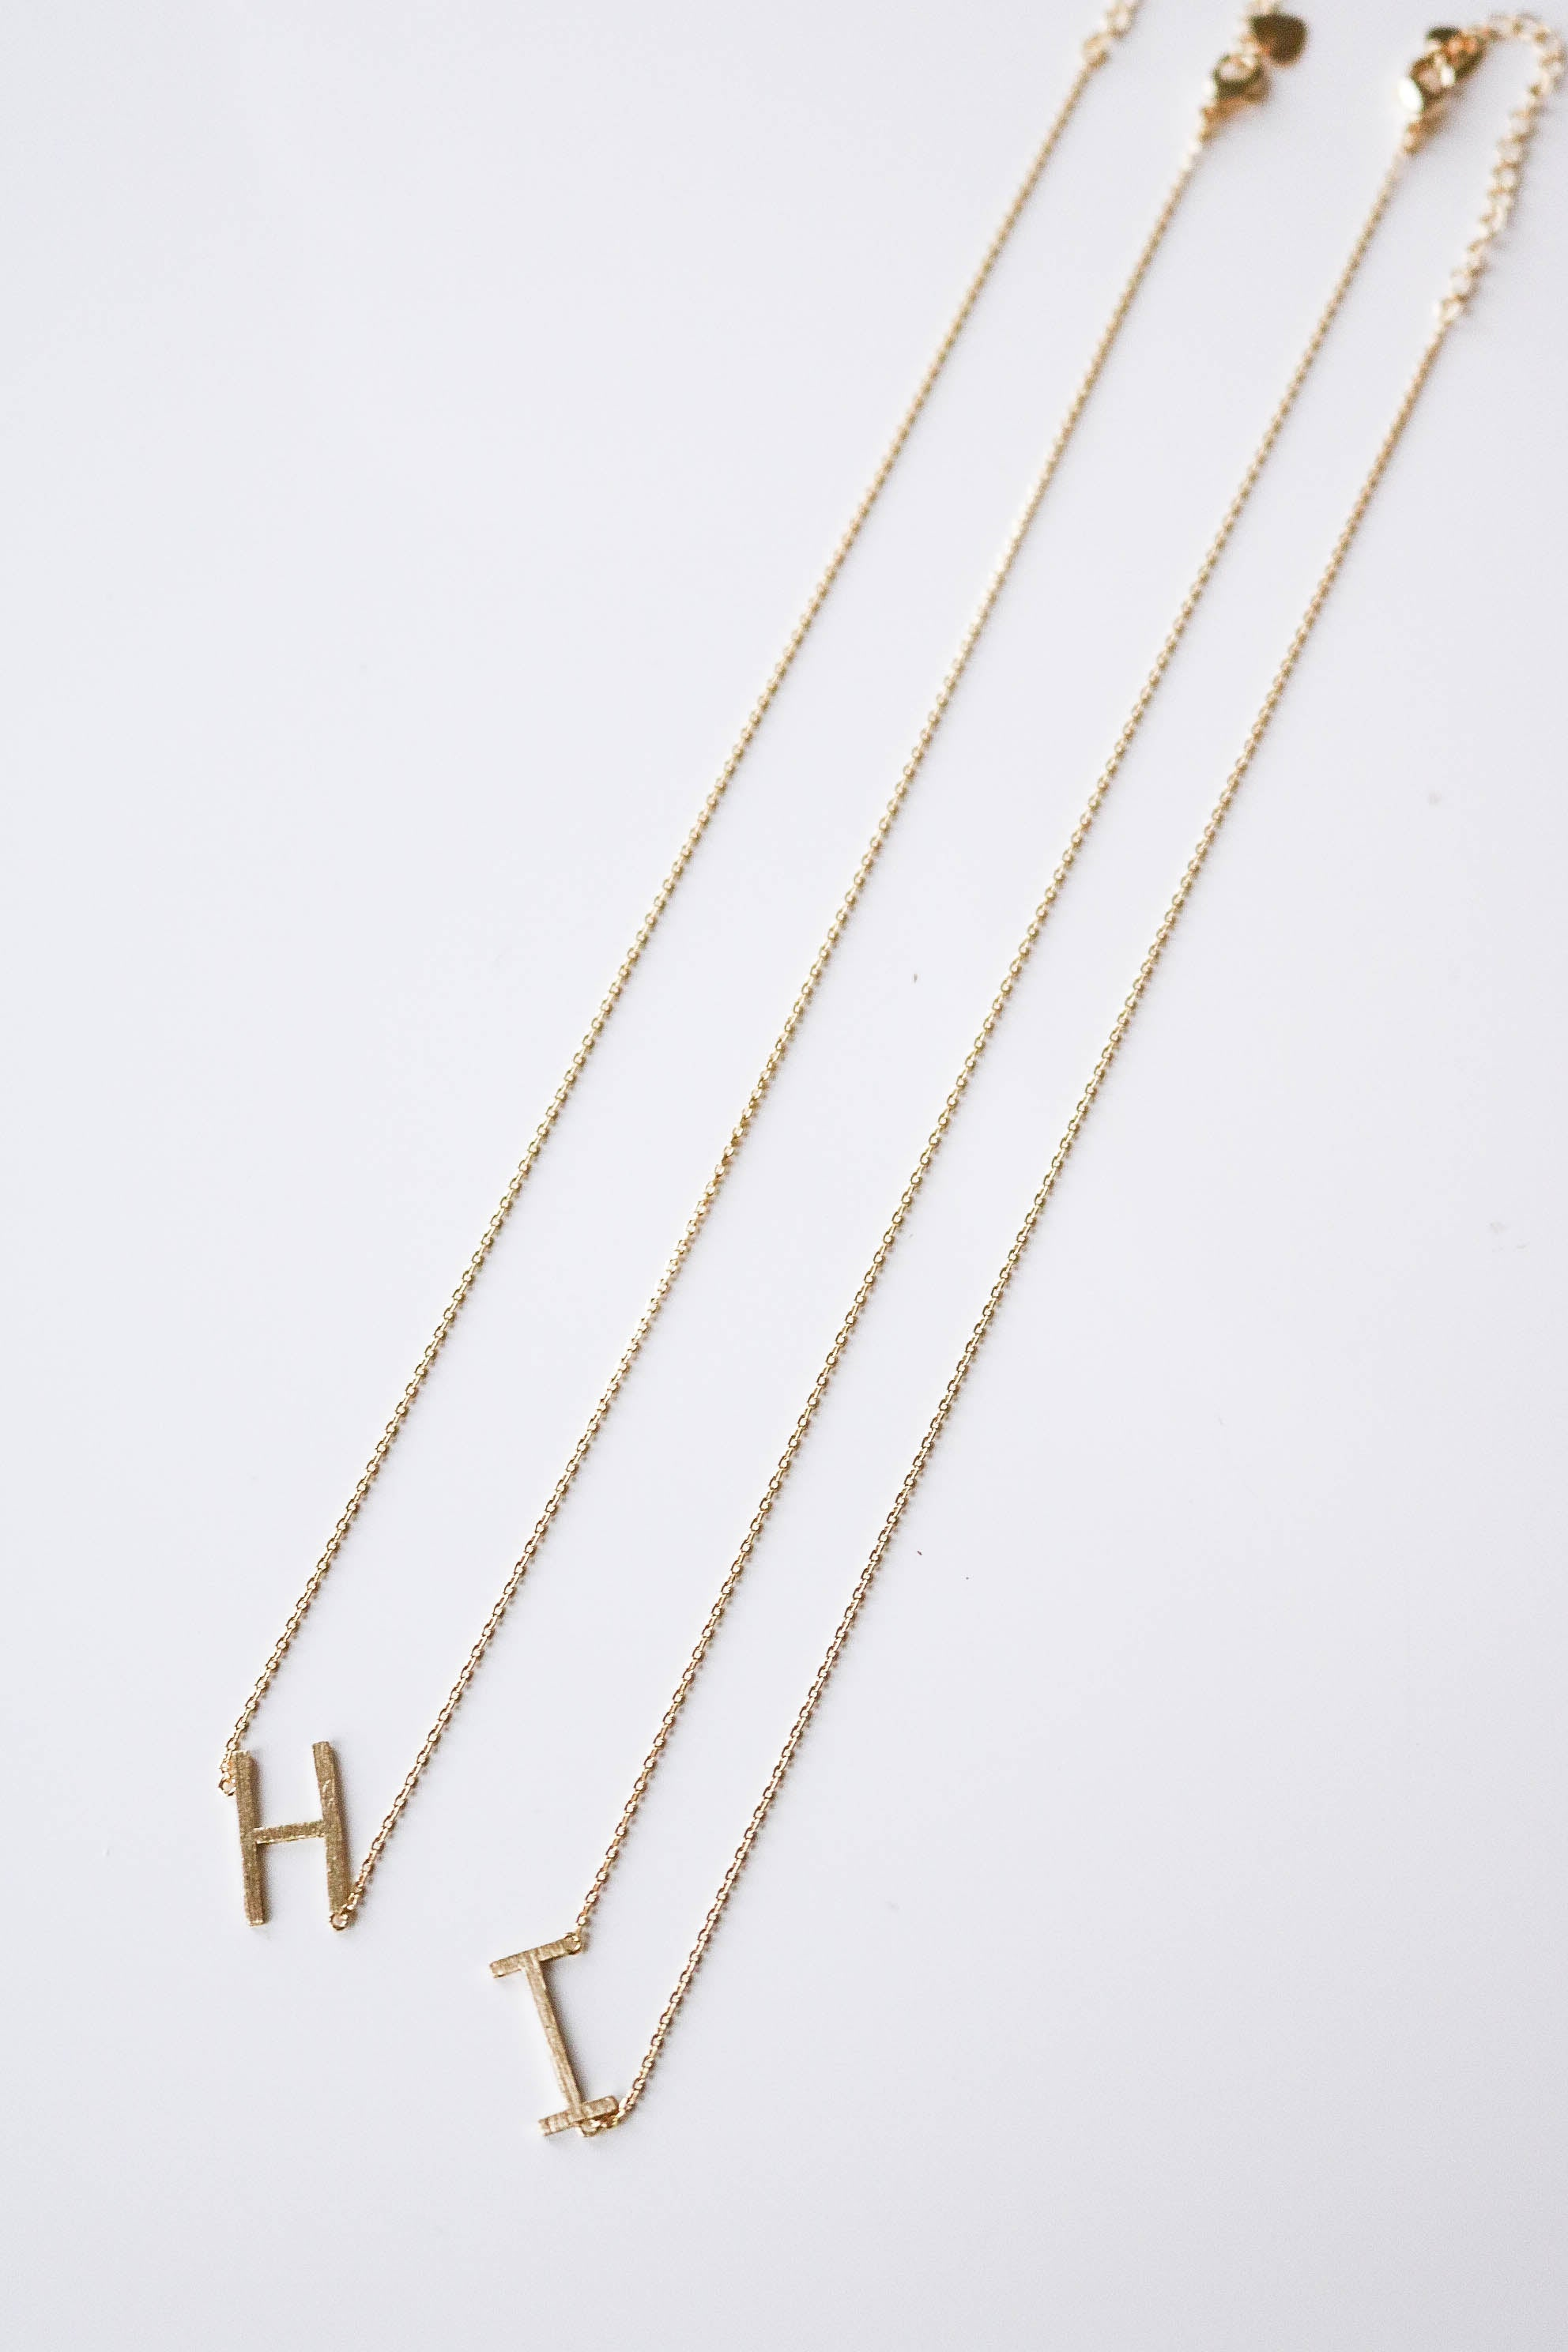 Initial Here Necklace